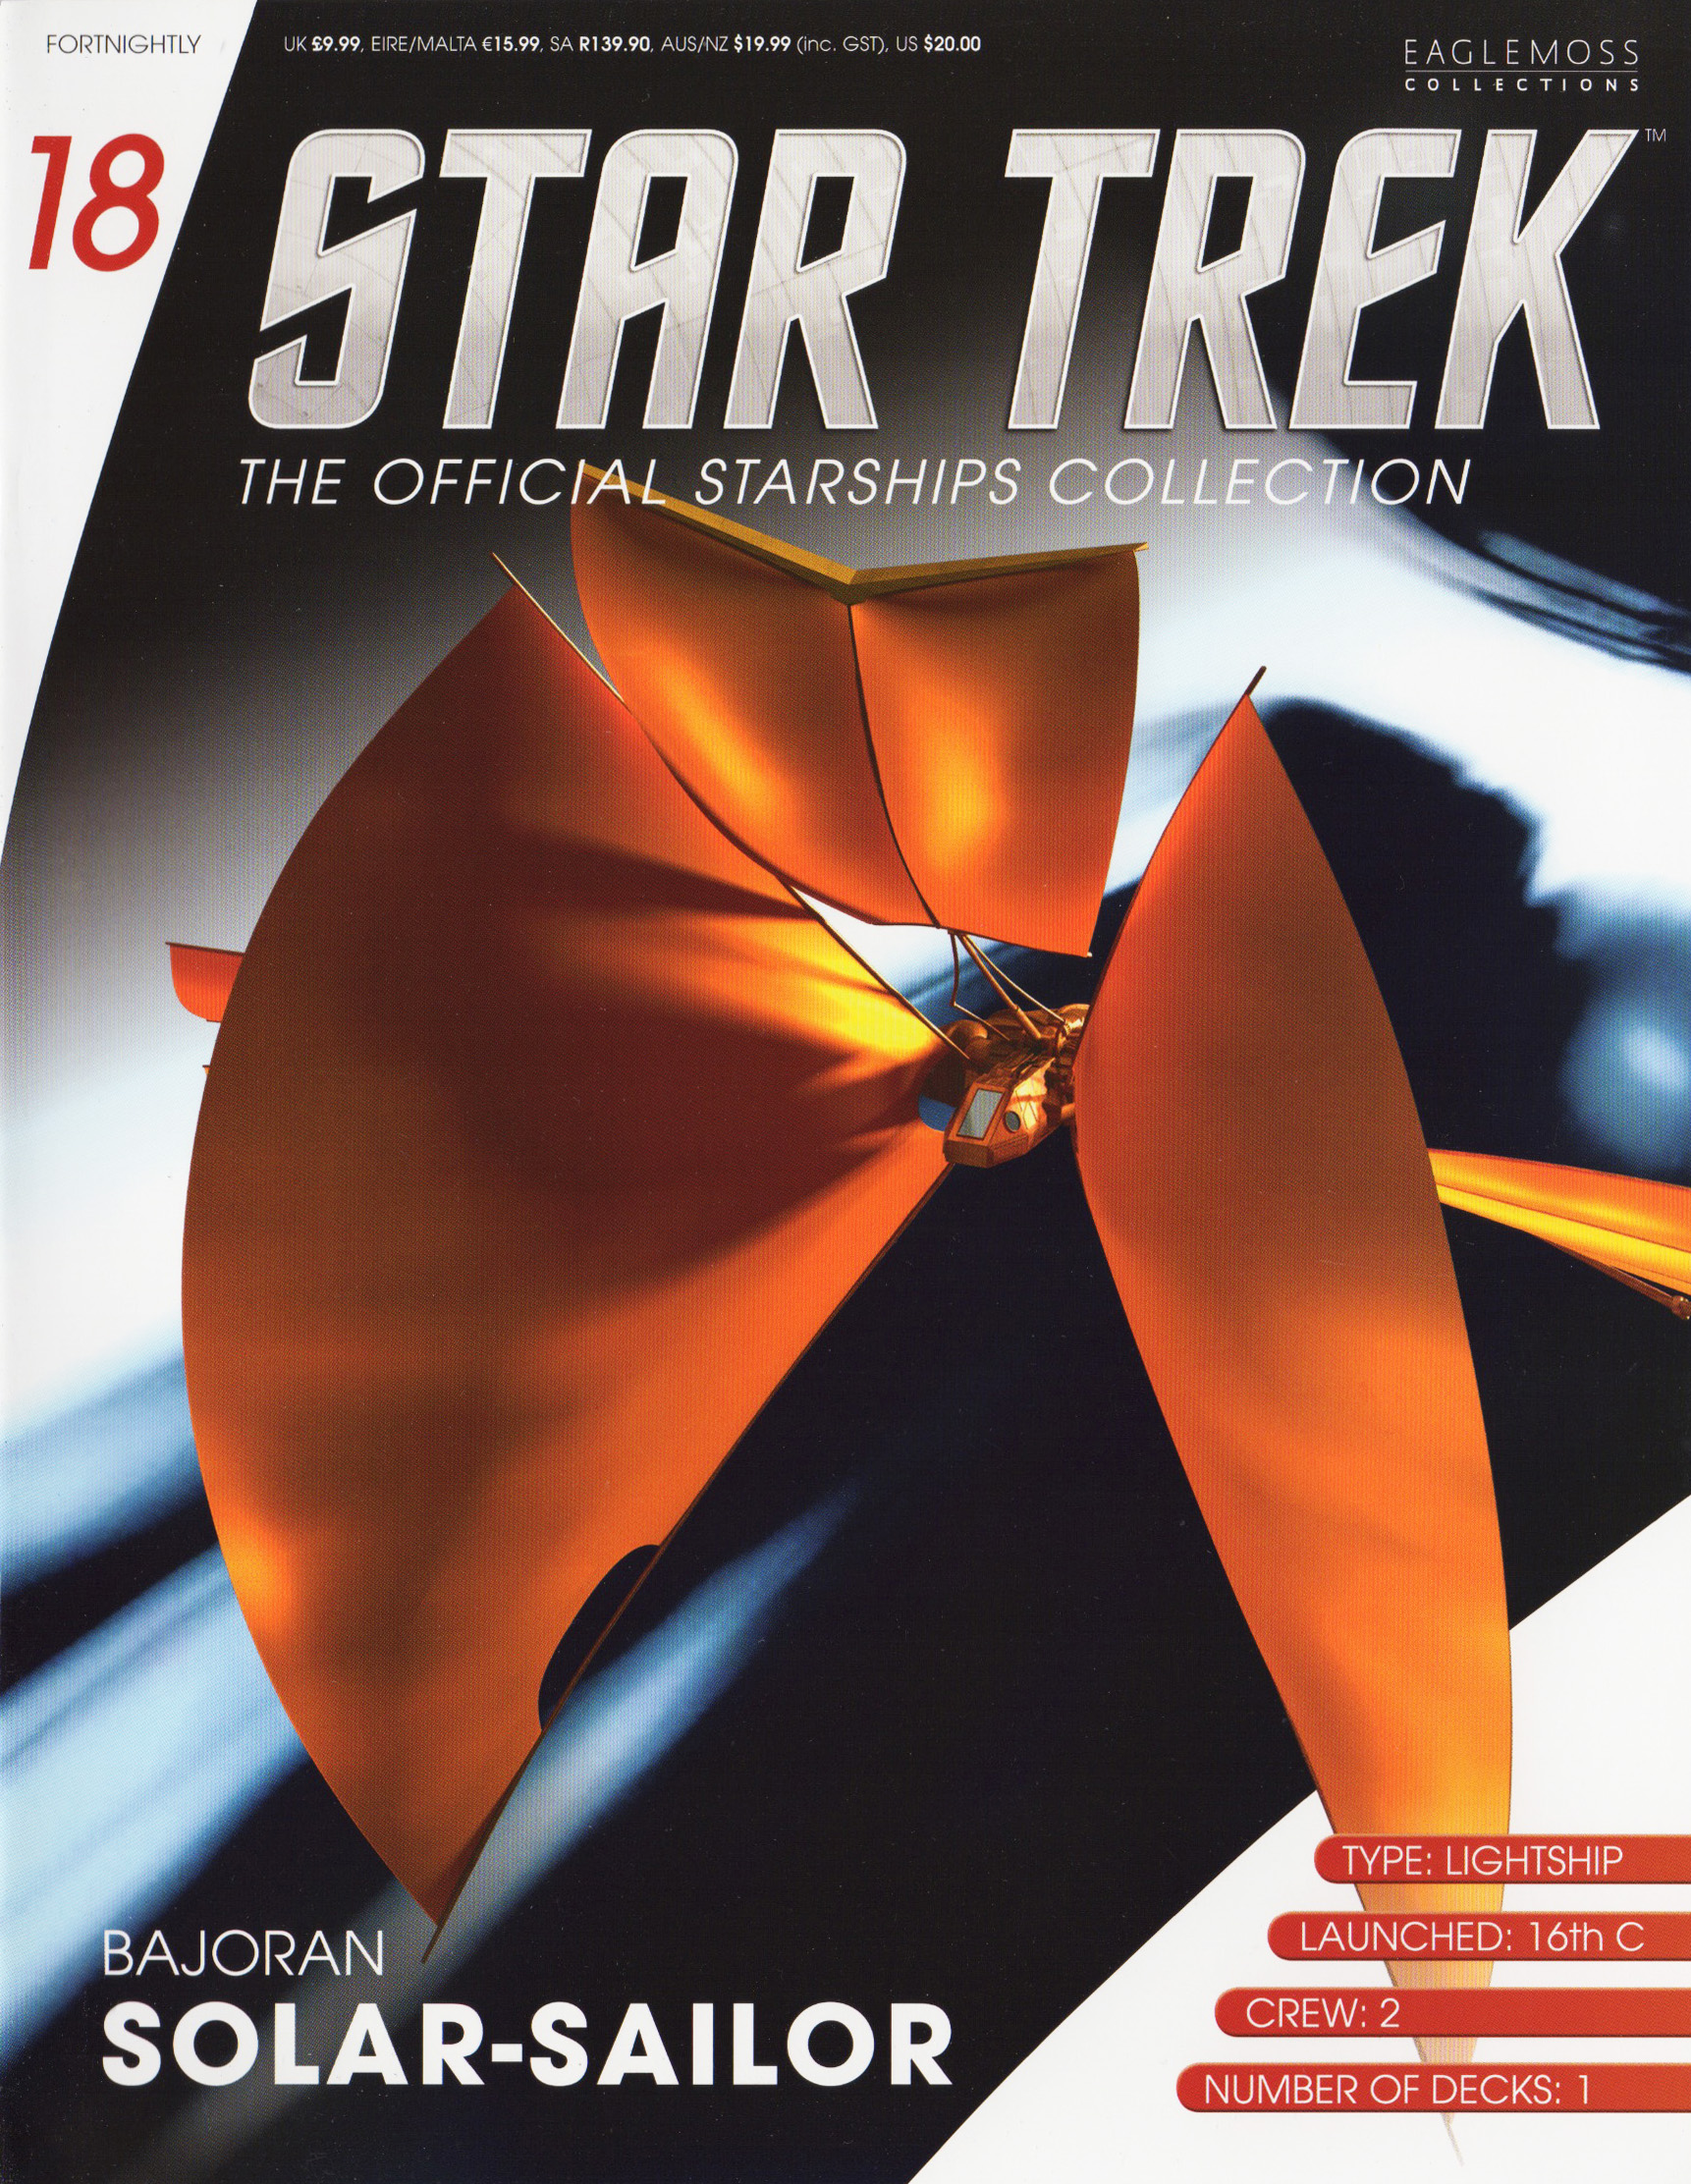 Eaglemoss Star Trek Starships Issue 18